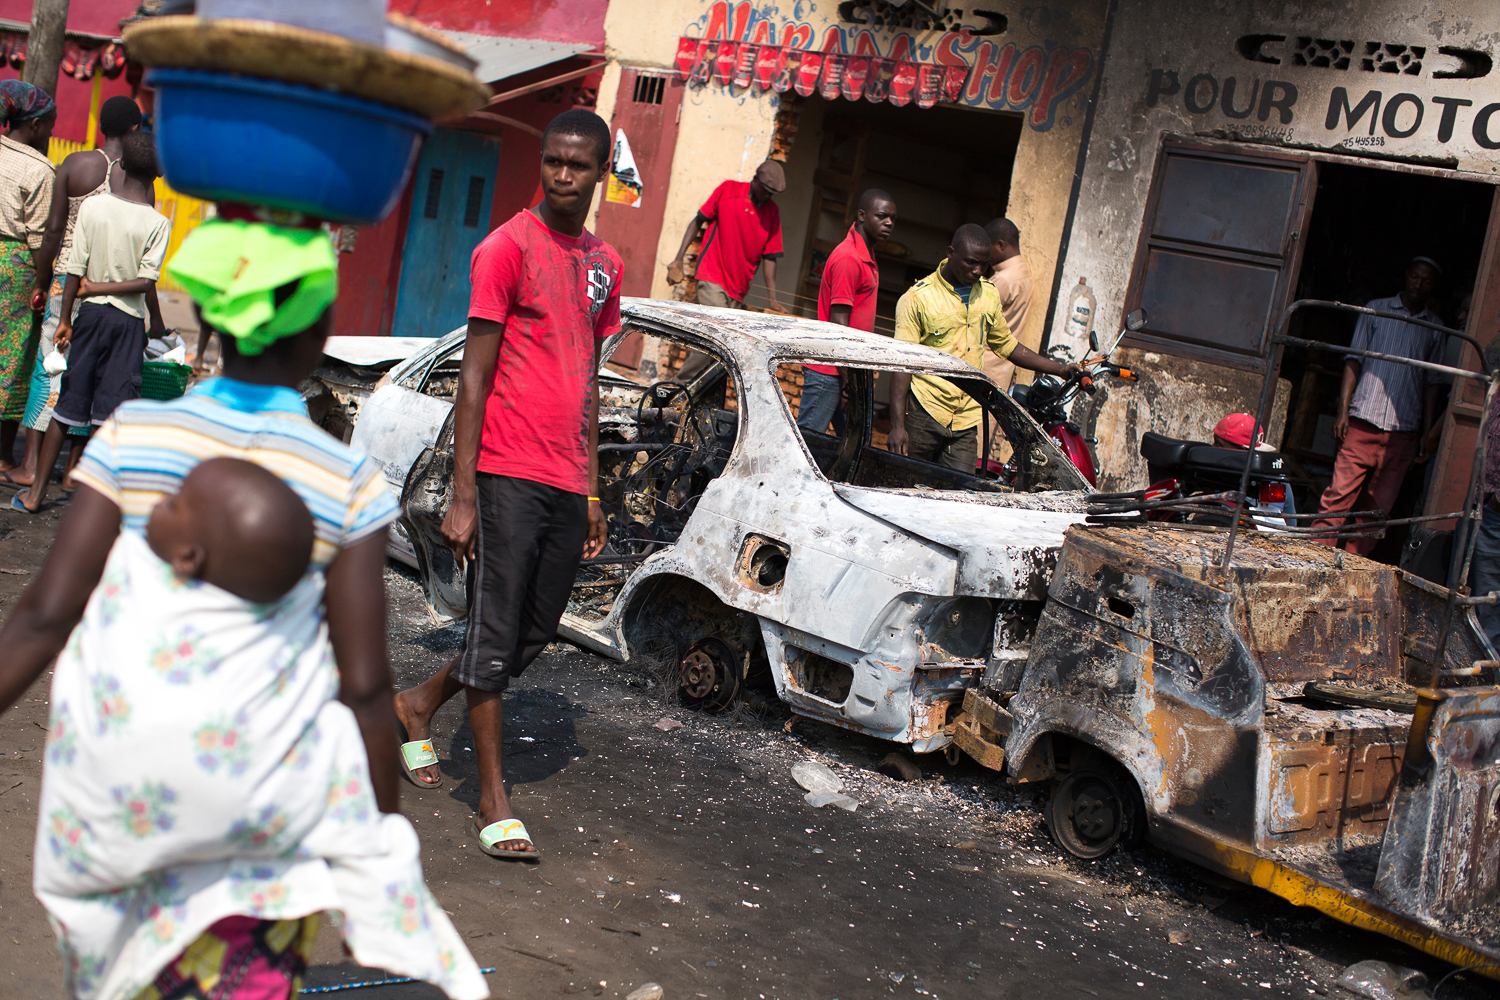 Local residents walk past a burned-out car and tuk-tuk in Cibitoke, Bujumbura, on the morning of August 4th. [Griff Tapper/Al Jazeera]